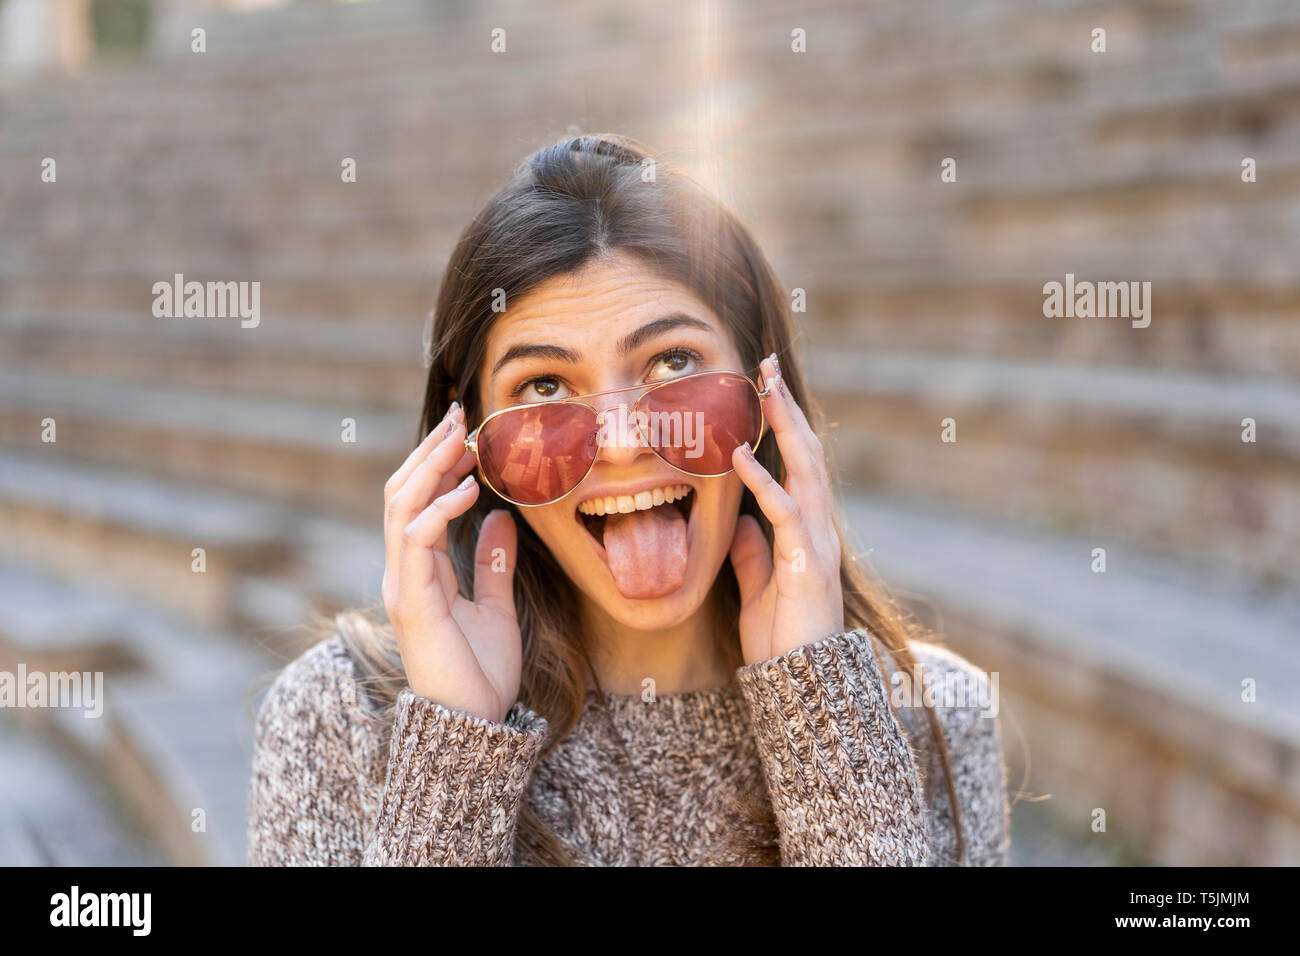 Playful young woman wearing sunglasses and grimacing - Stock Image